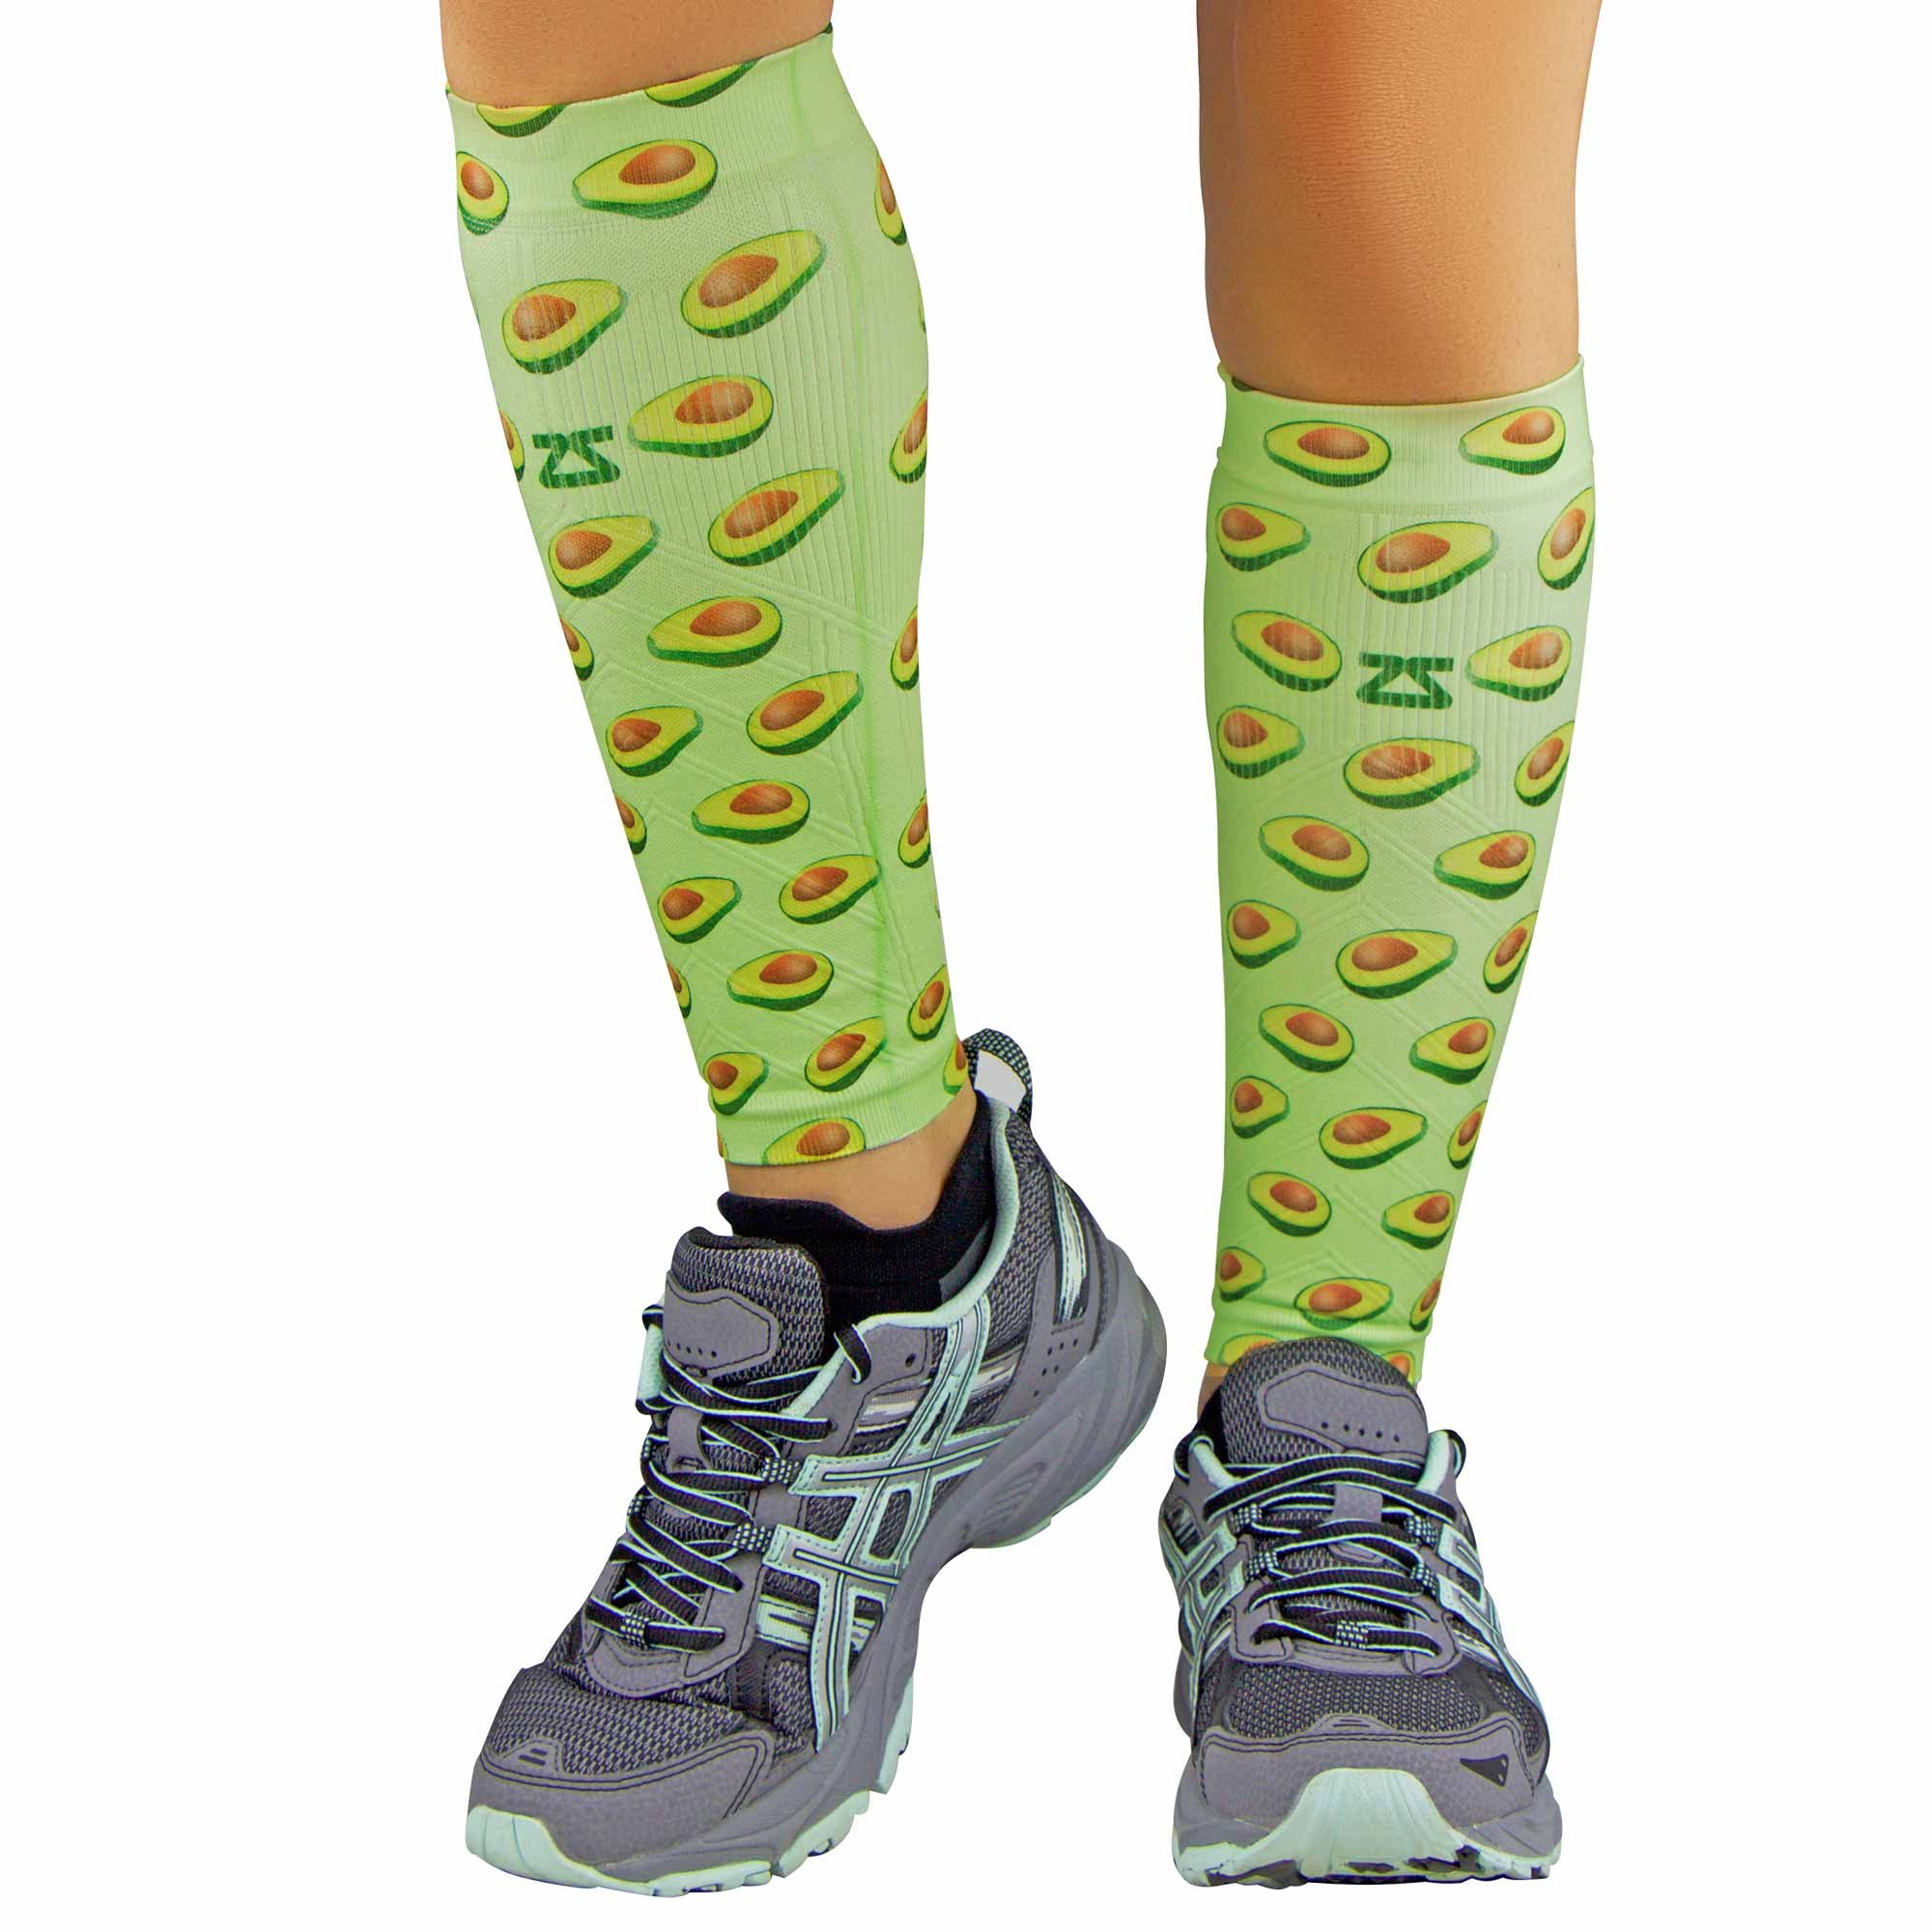 Zensah Print Compression Leg Sleeves - Avocados // Lime Green - XS/S